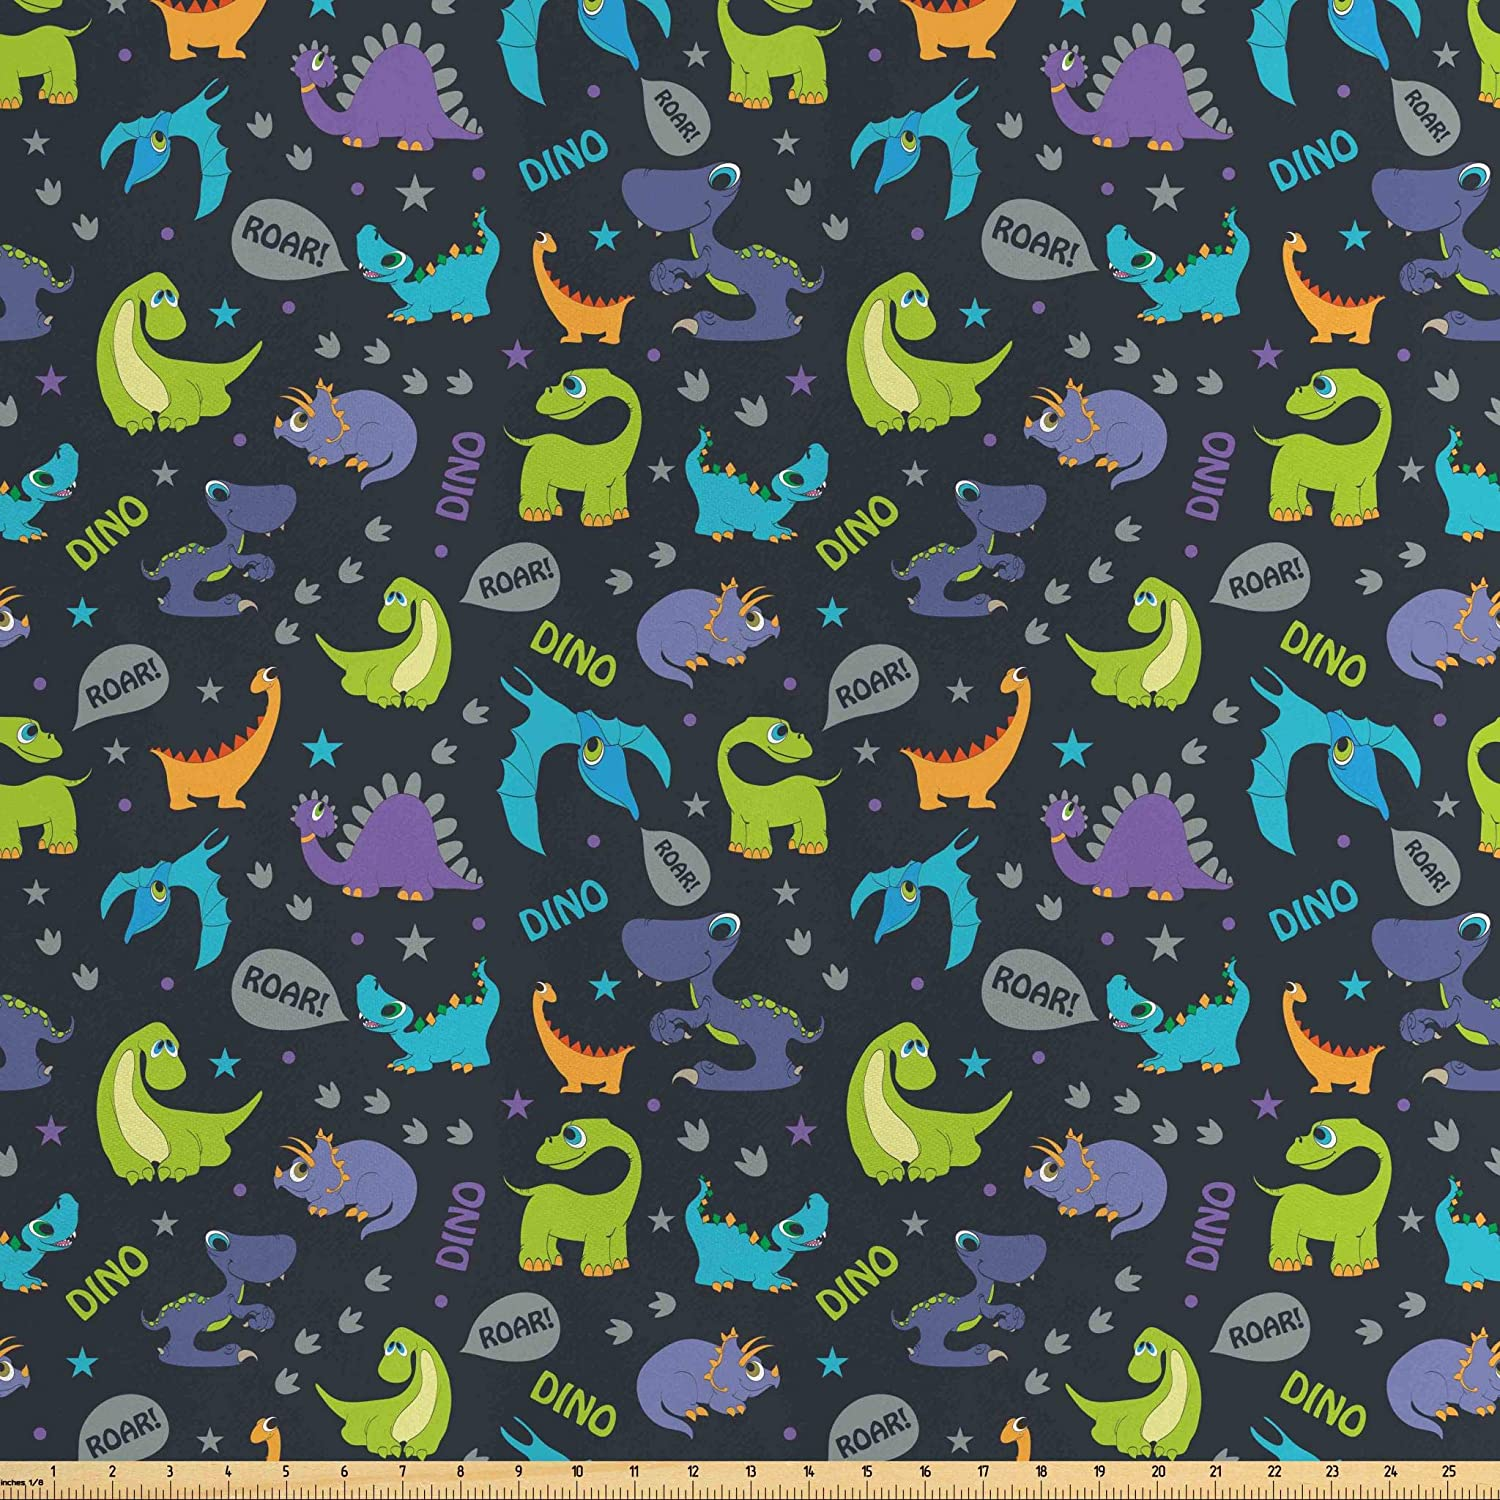 Lunarable Jurassic Fabric by The Yard, Cartoon Dinosaurs with Expressions Roar Footprints Dots and Stars Background, Decorative Satin Fabric for Home Textiles and Crafts, 5 Yards, Navy Blue